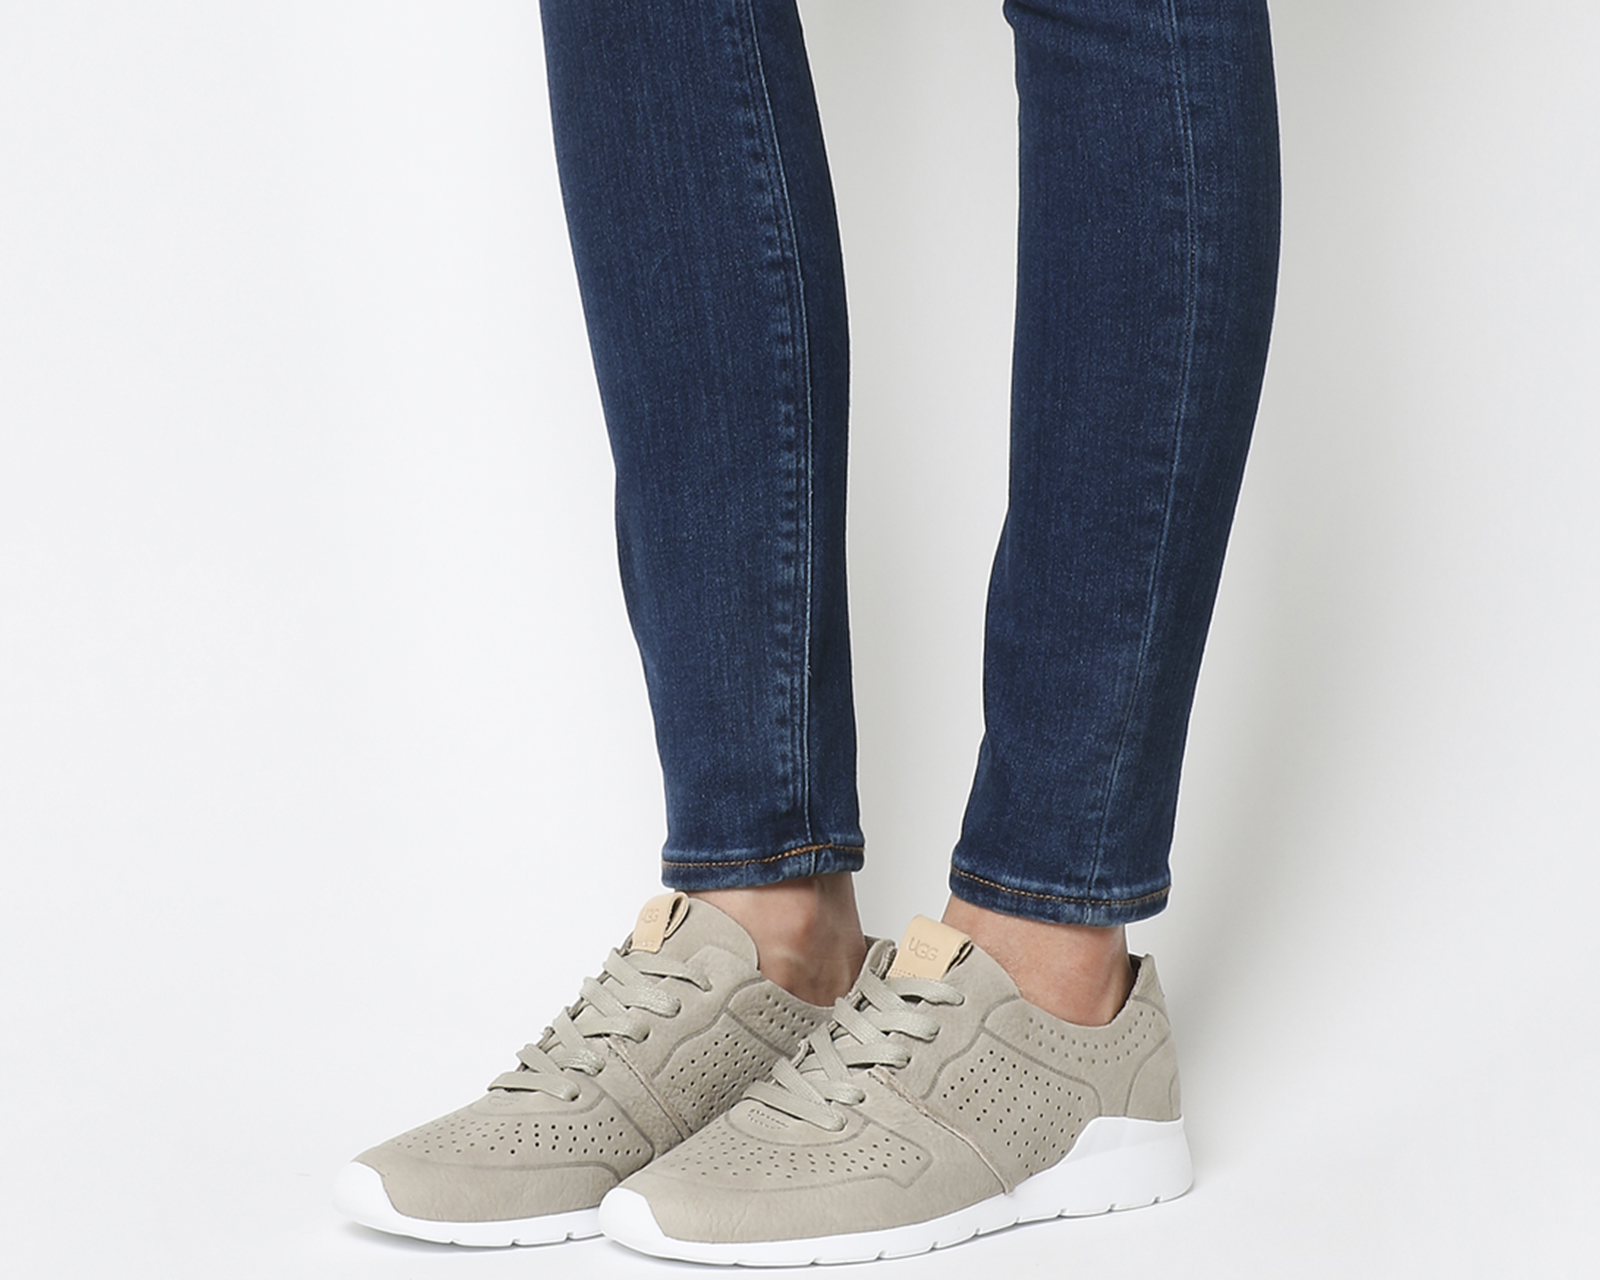 5f1c39335c6 These Comfy Suede Sneakers Are Like Walking on Air, Reviewers Say